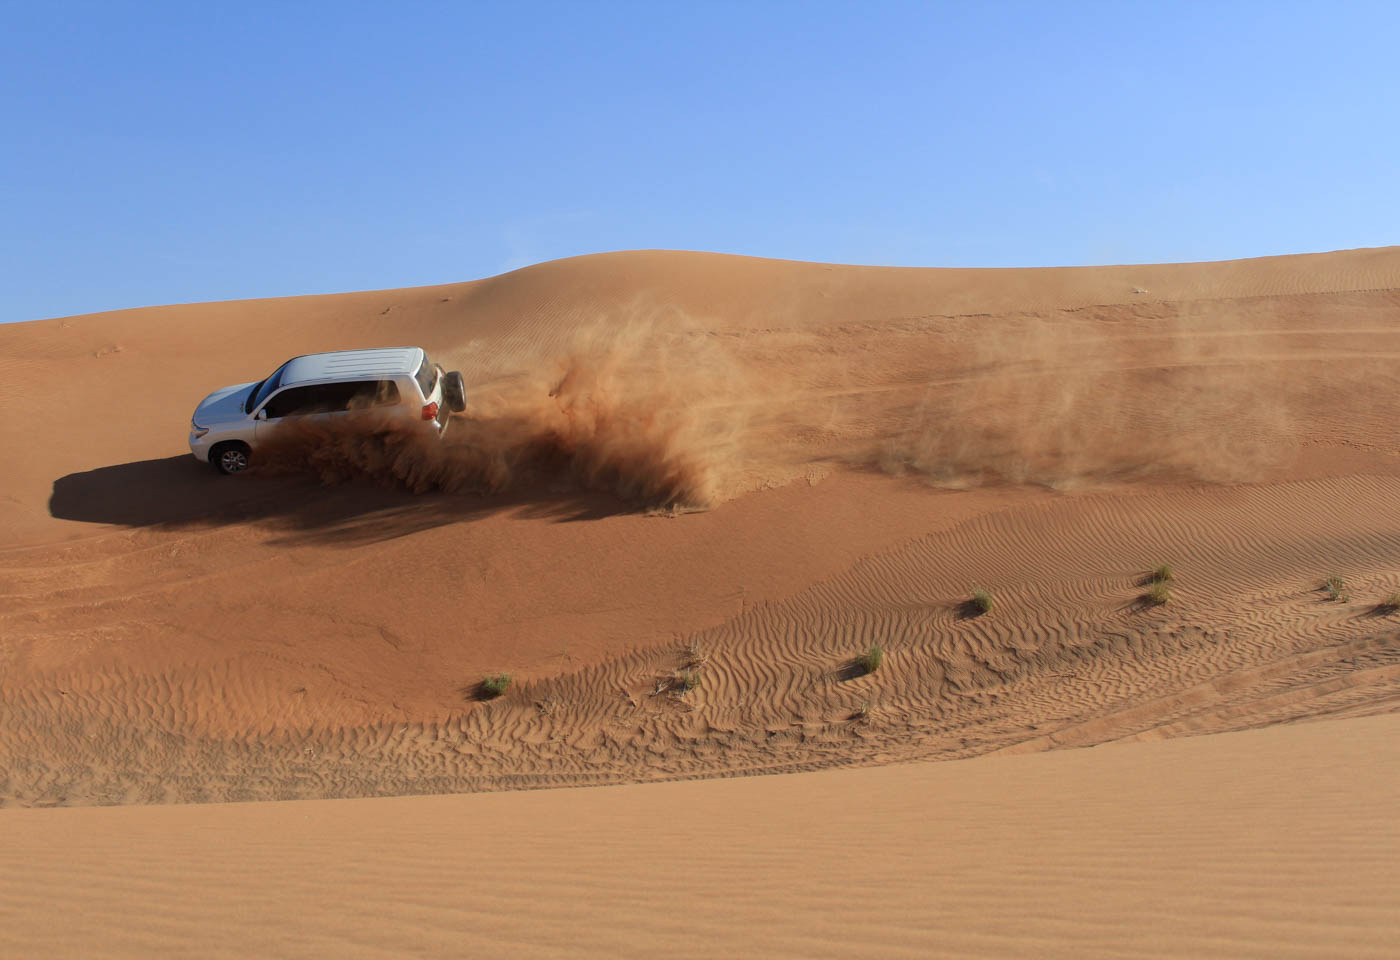 4WD on sand dunes taken with Canon EOS 1300D DSLR camera